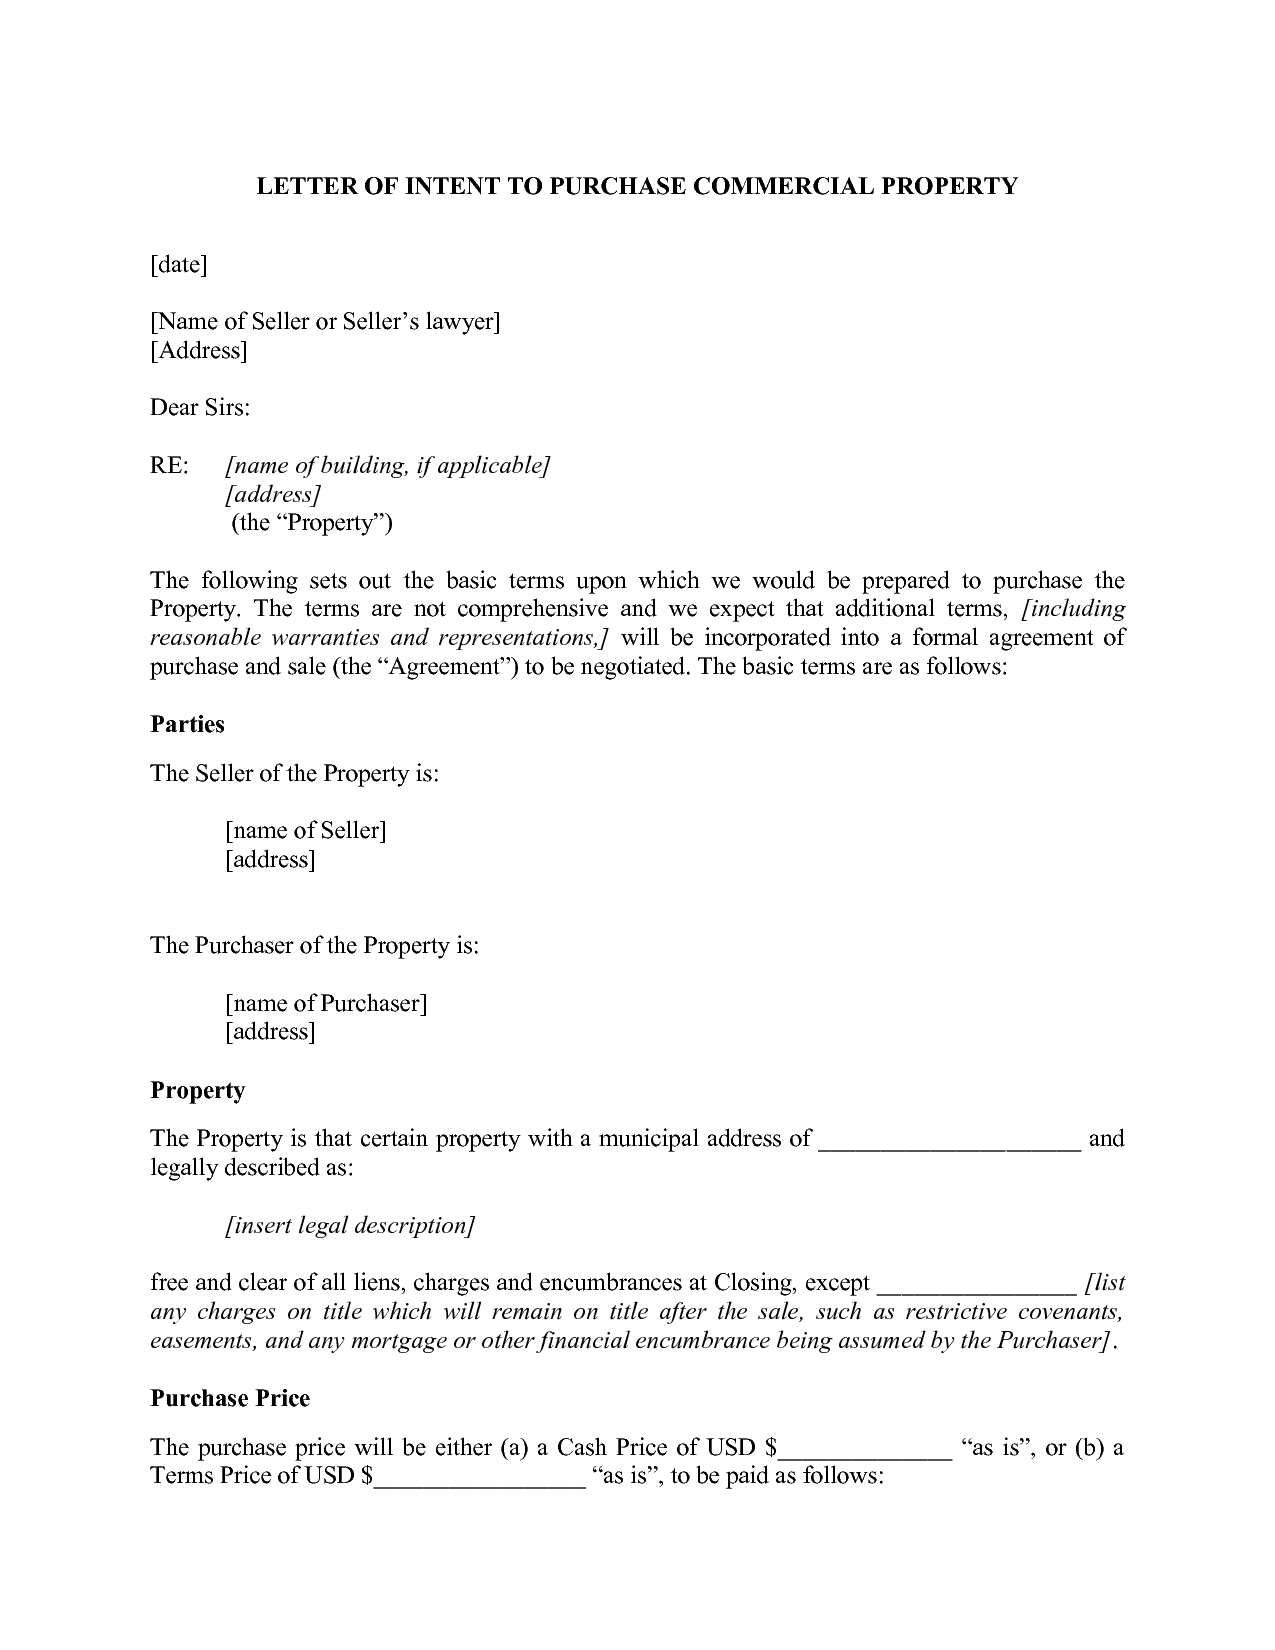 Commercial Real Estate Letter Of Intent Template - Letter Nt Best S Property Template Purchase Real Estate